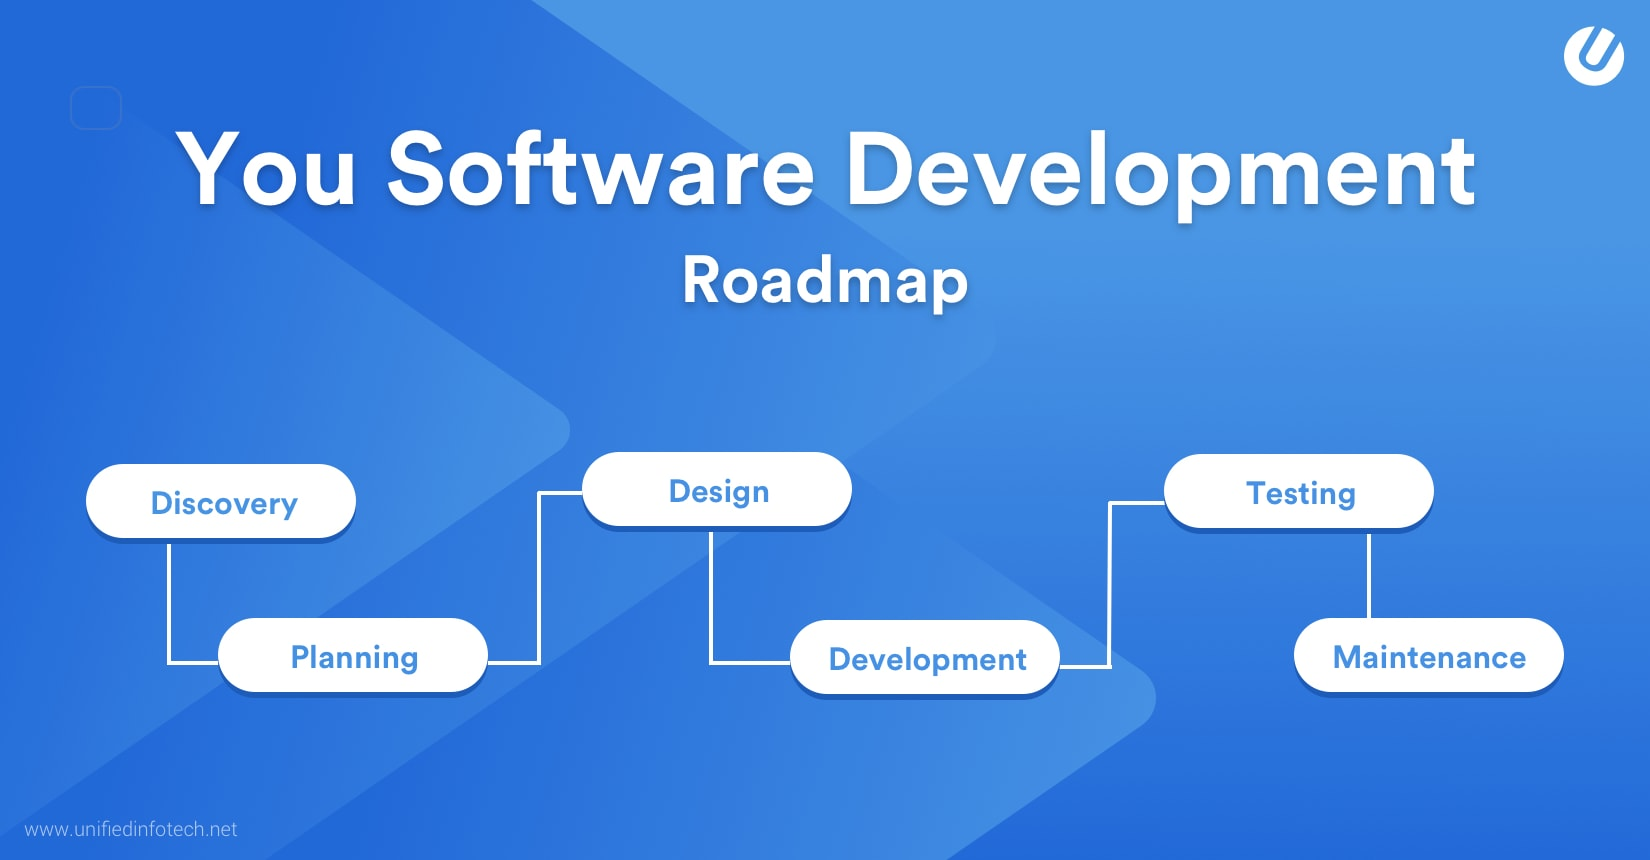 The Agile Software Development Process – How We Do It